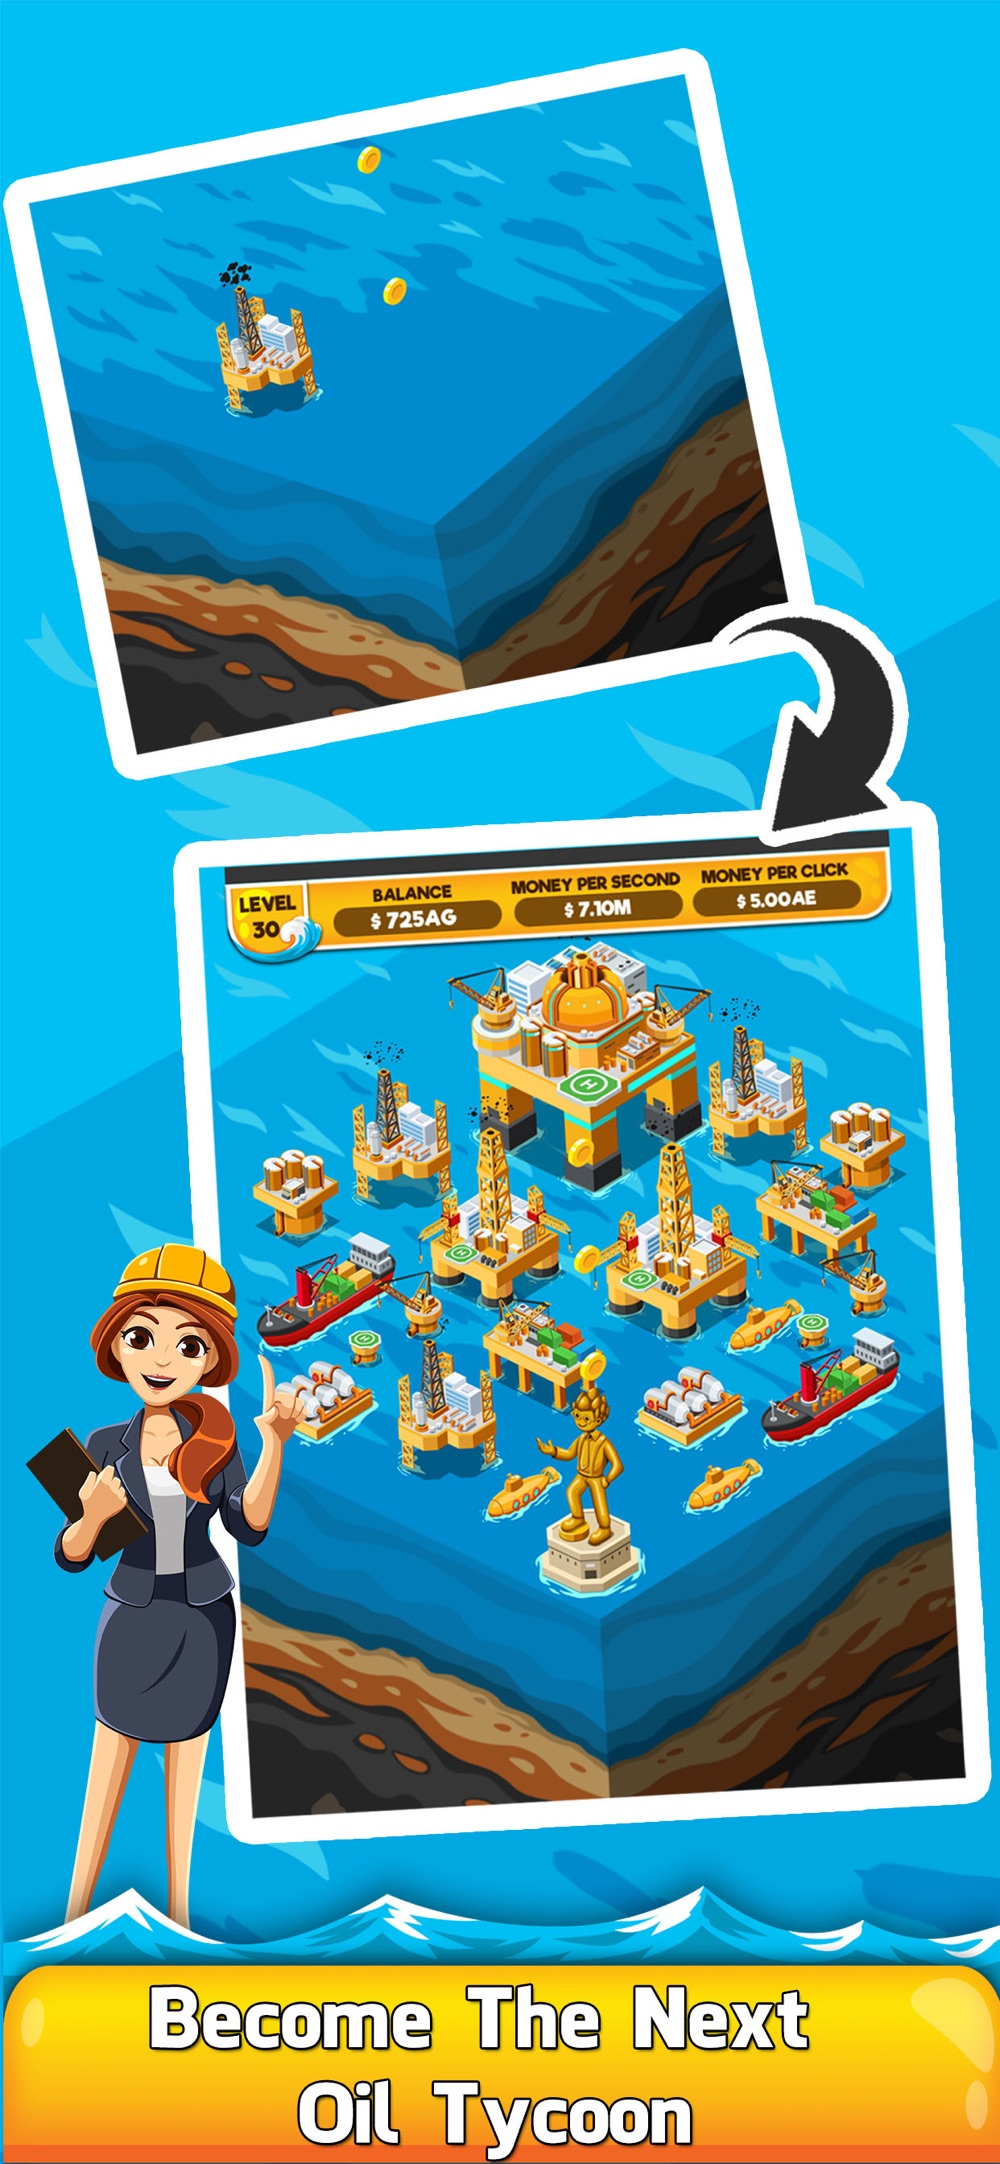 Oil Tycoon 2 – Gas Clicker Inc Cheat Codes